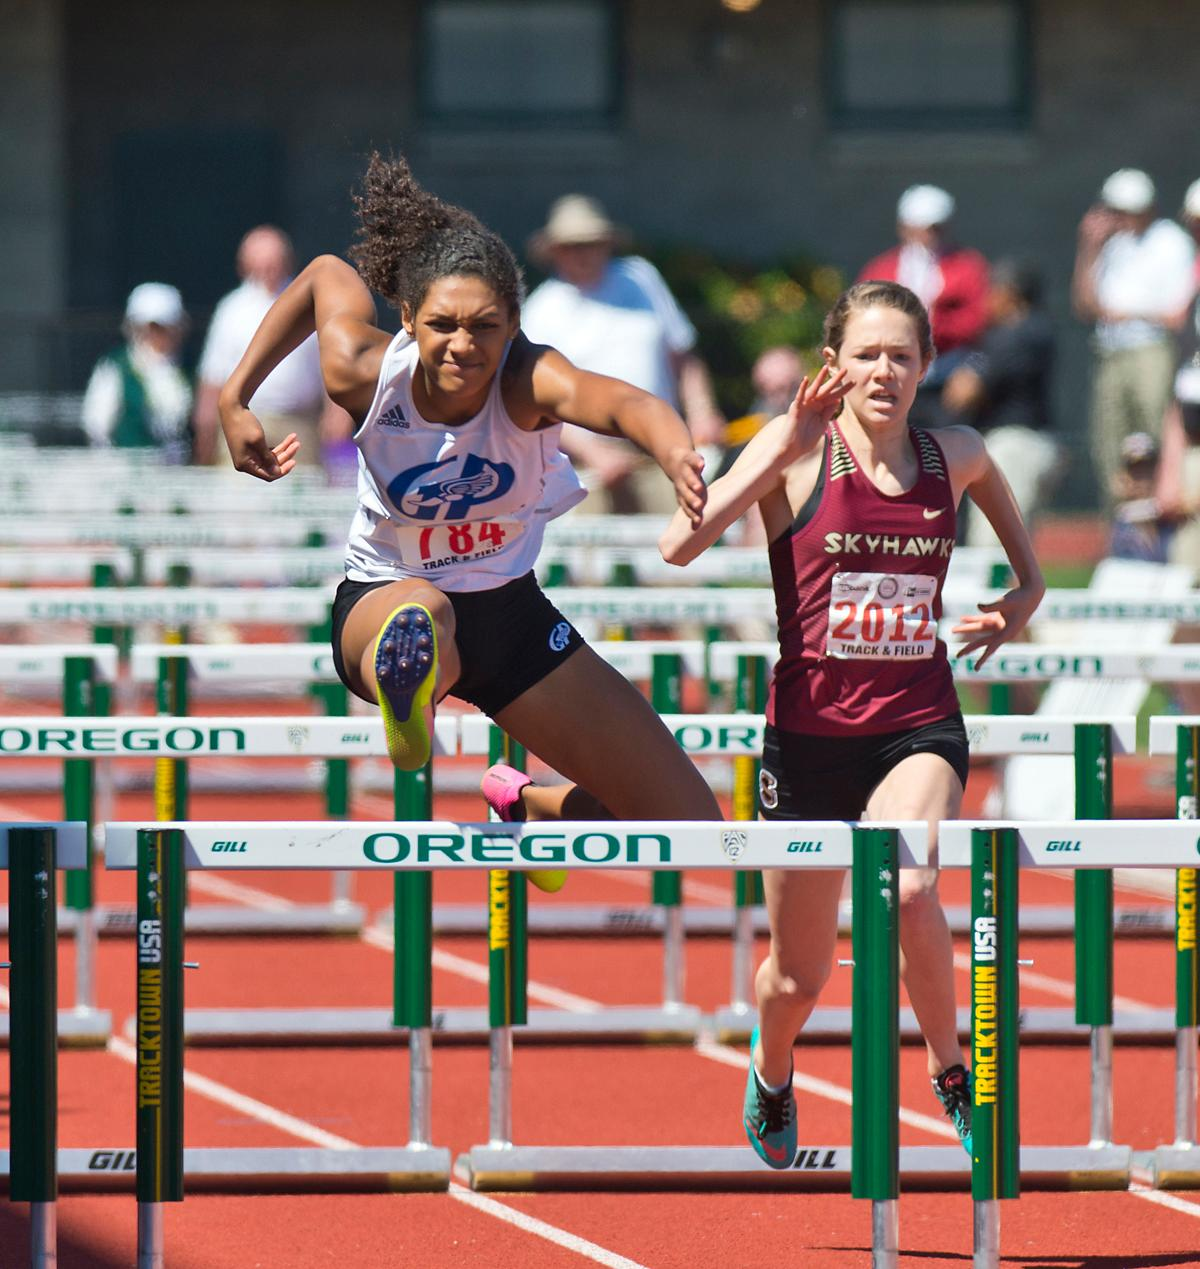 Deshae Wise from Grants Pass wins the 6A Girls 100 meter Hurdles with a time of 13.96 at the OSAA Championship at Hayward Field on Saturday. Photo by Dan Morrison, Oregon News Lab